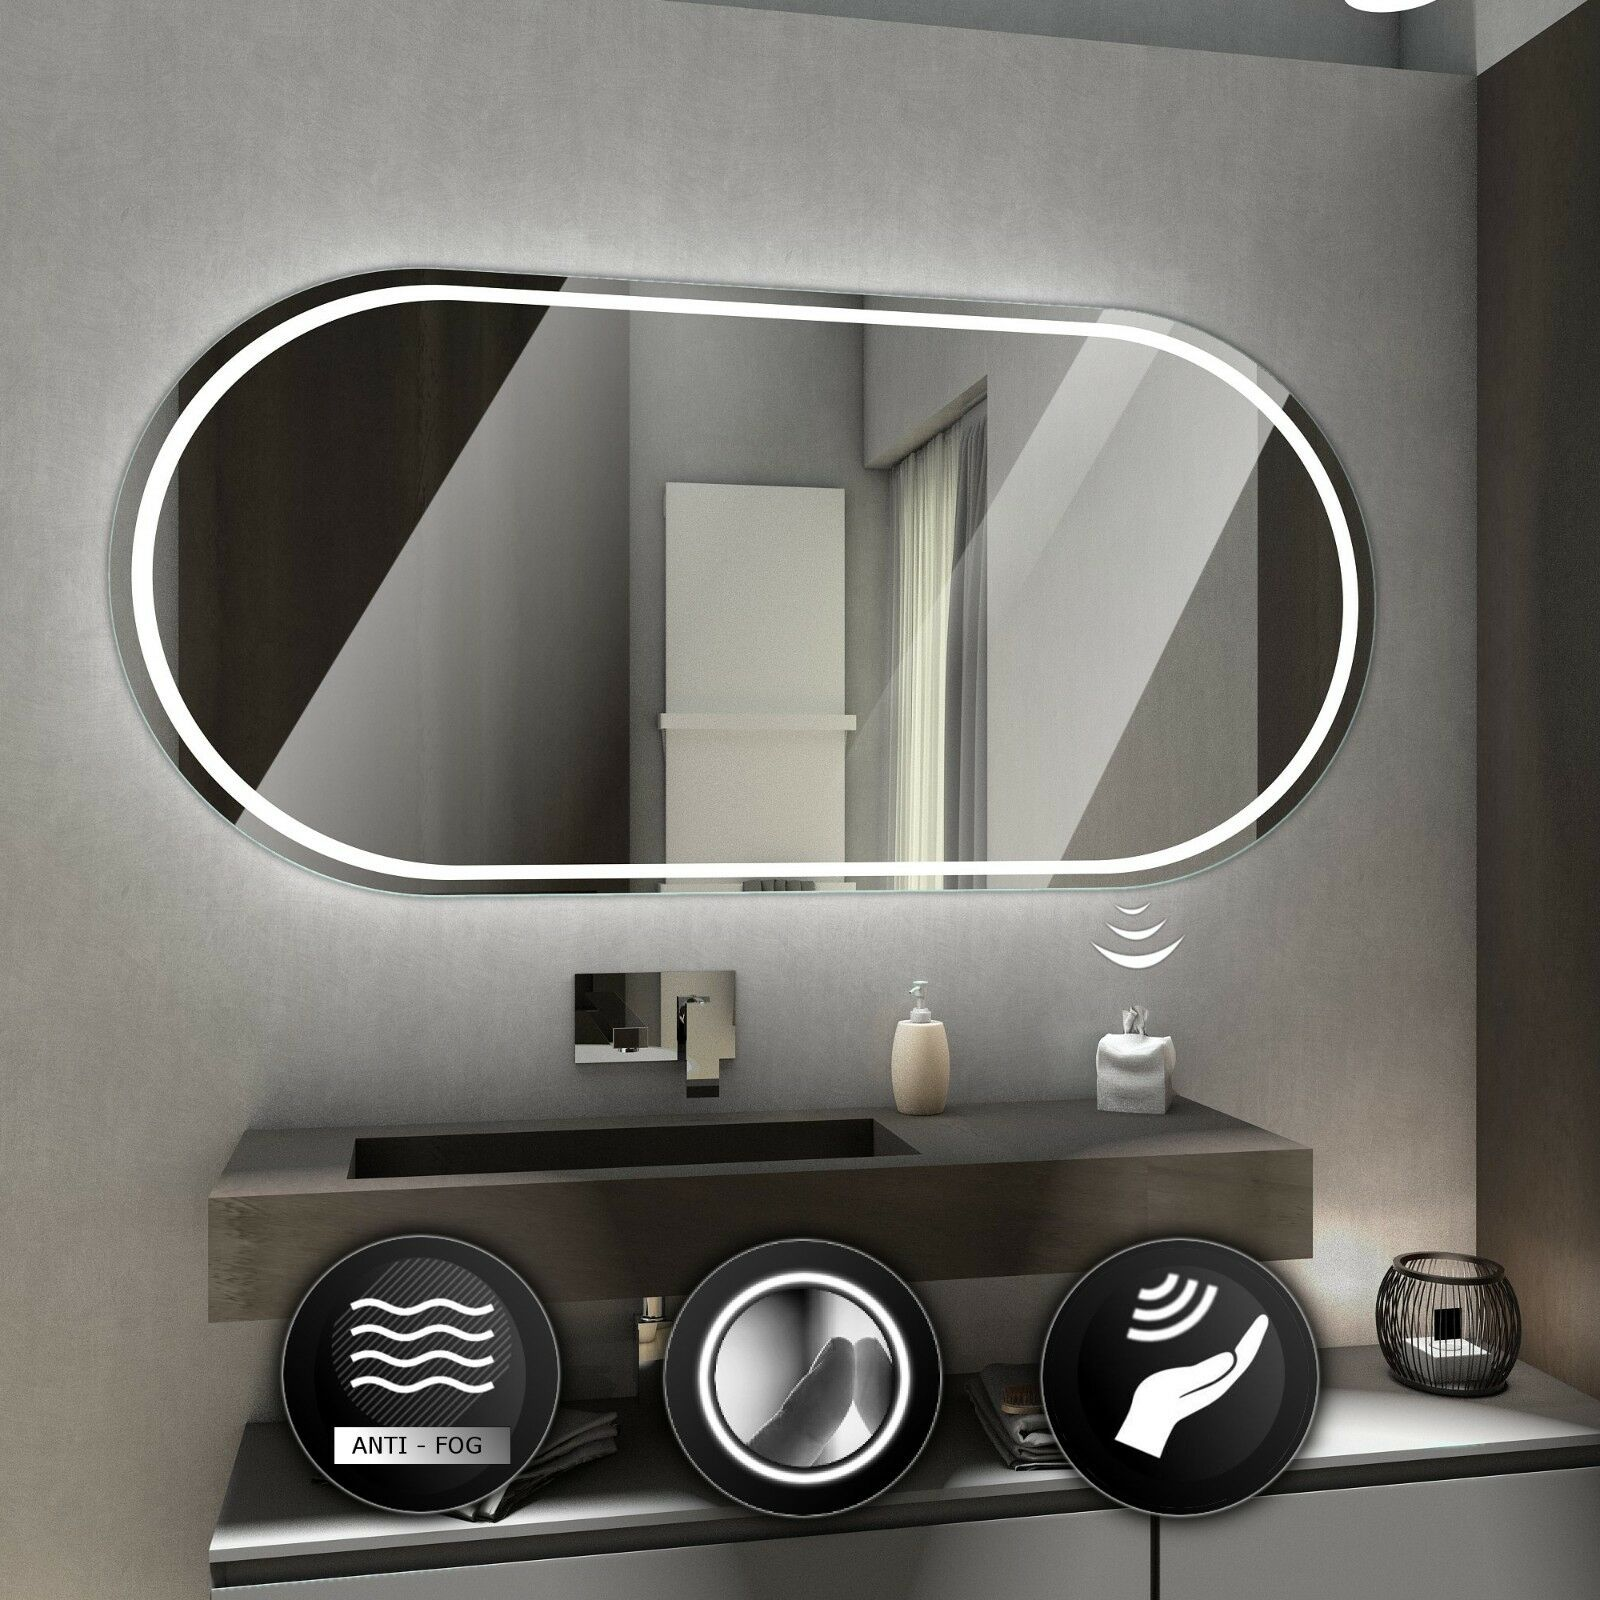 PALERMO illuminated led bathroom mirror Wall mirrors    Switches   Demister